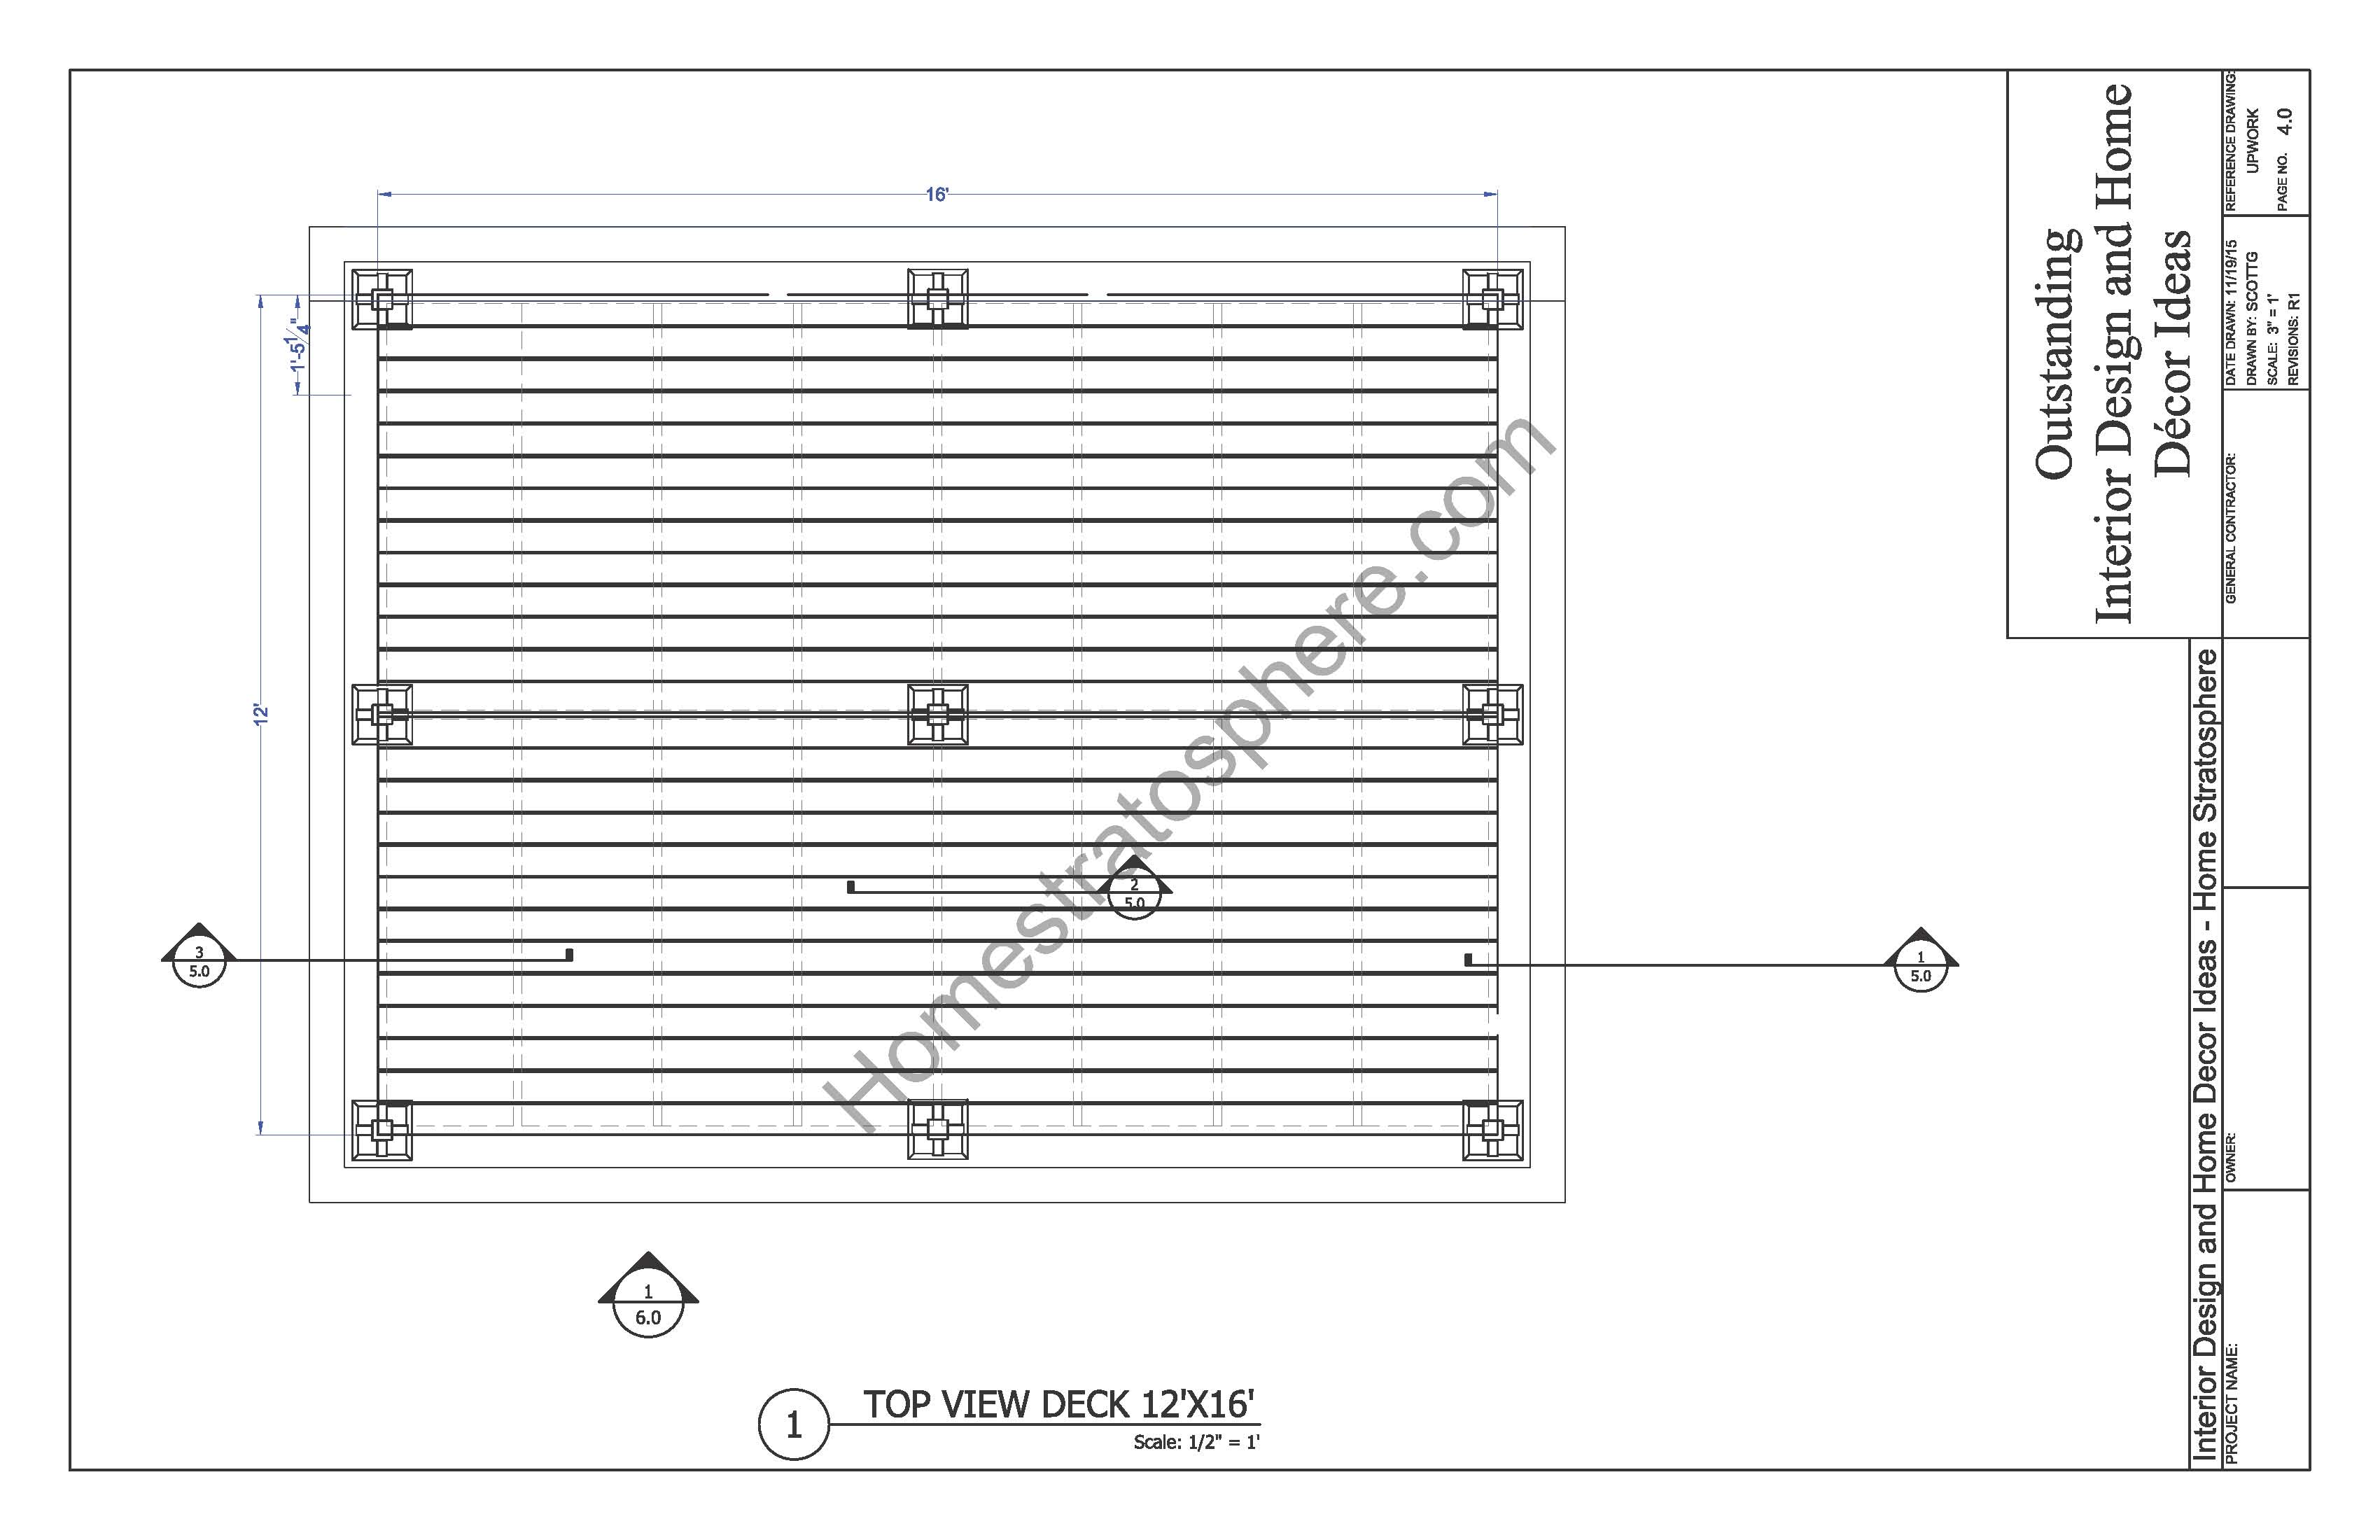 Free ground flat deck plan with pdf blueprint download for Plan of a flat